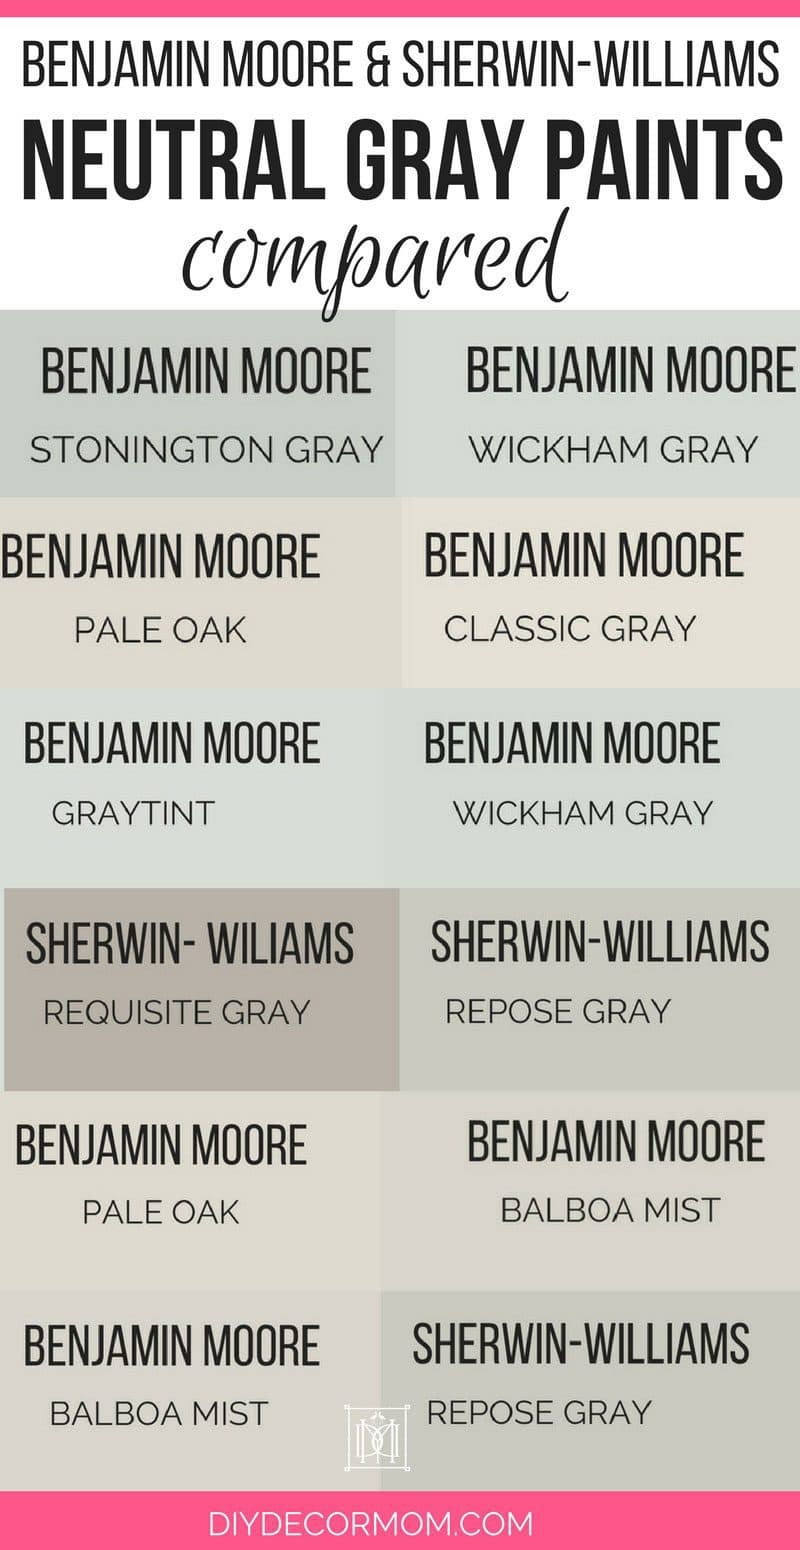 comparison of benjamin moore and sherwin williams light gray paint colors with neutral paint swatches